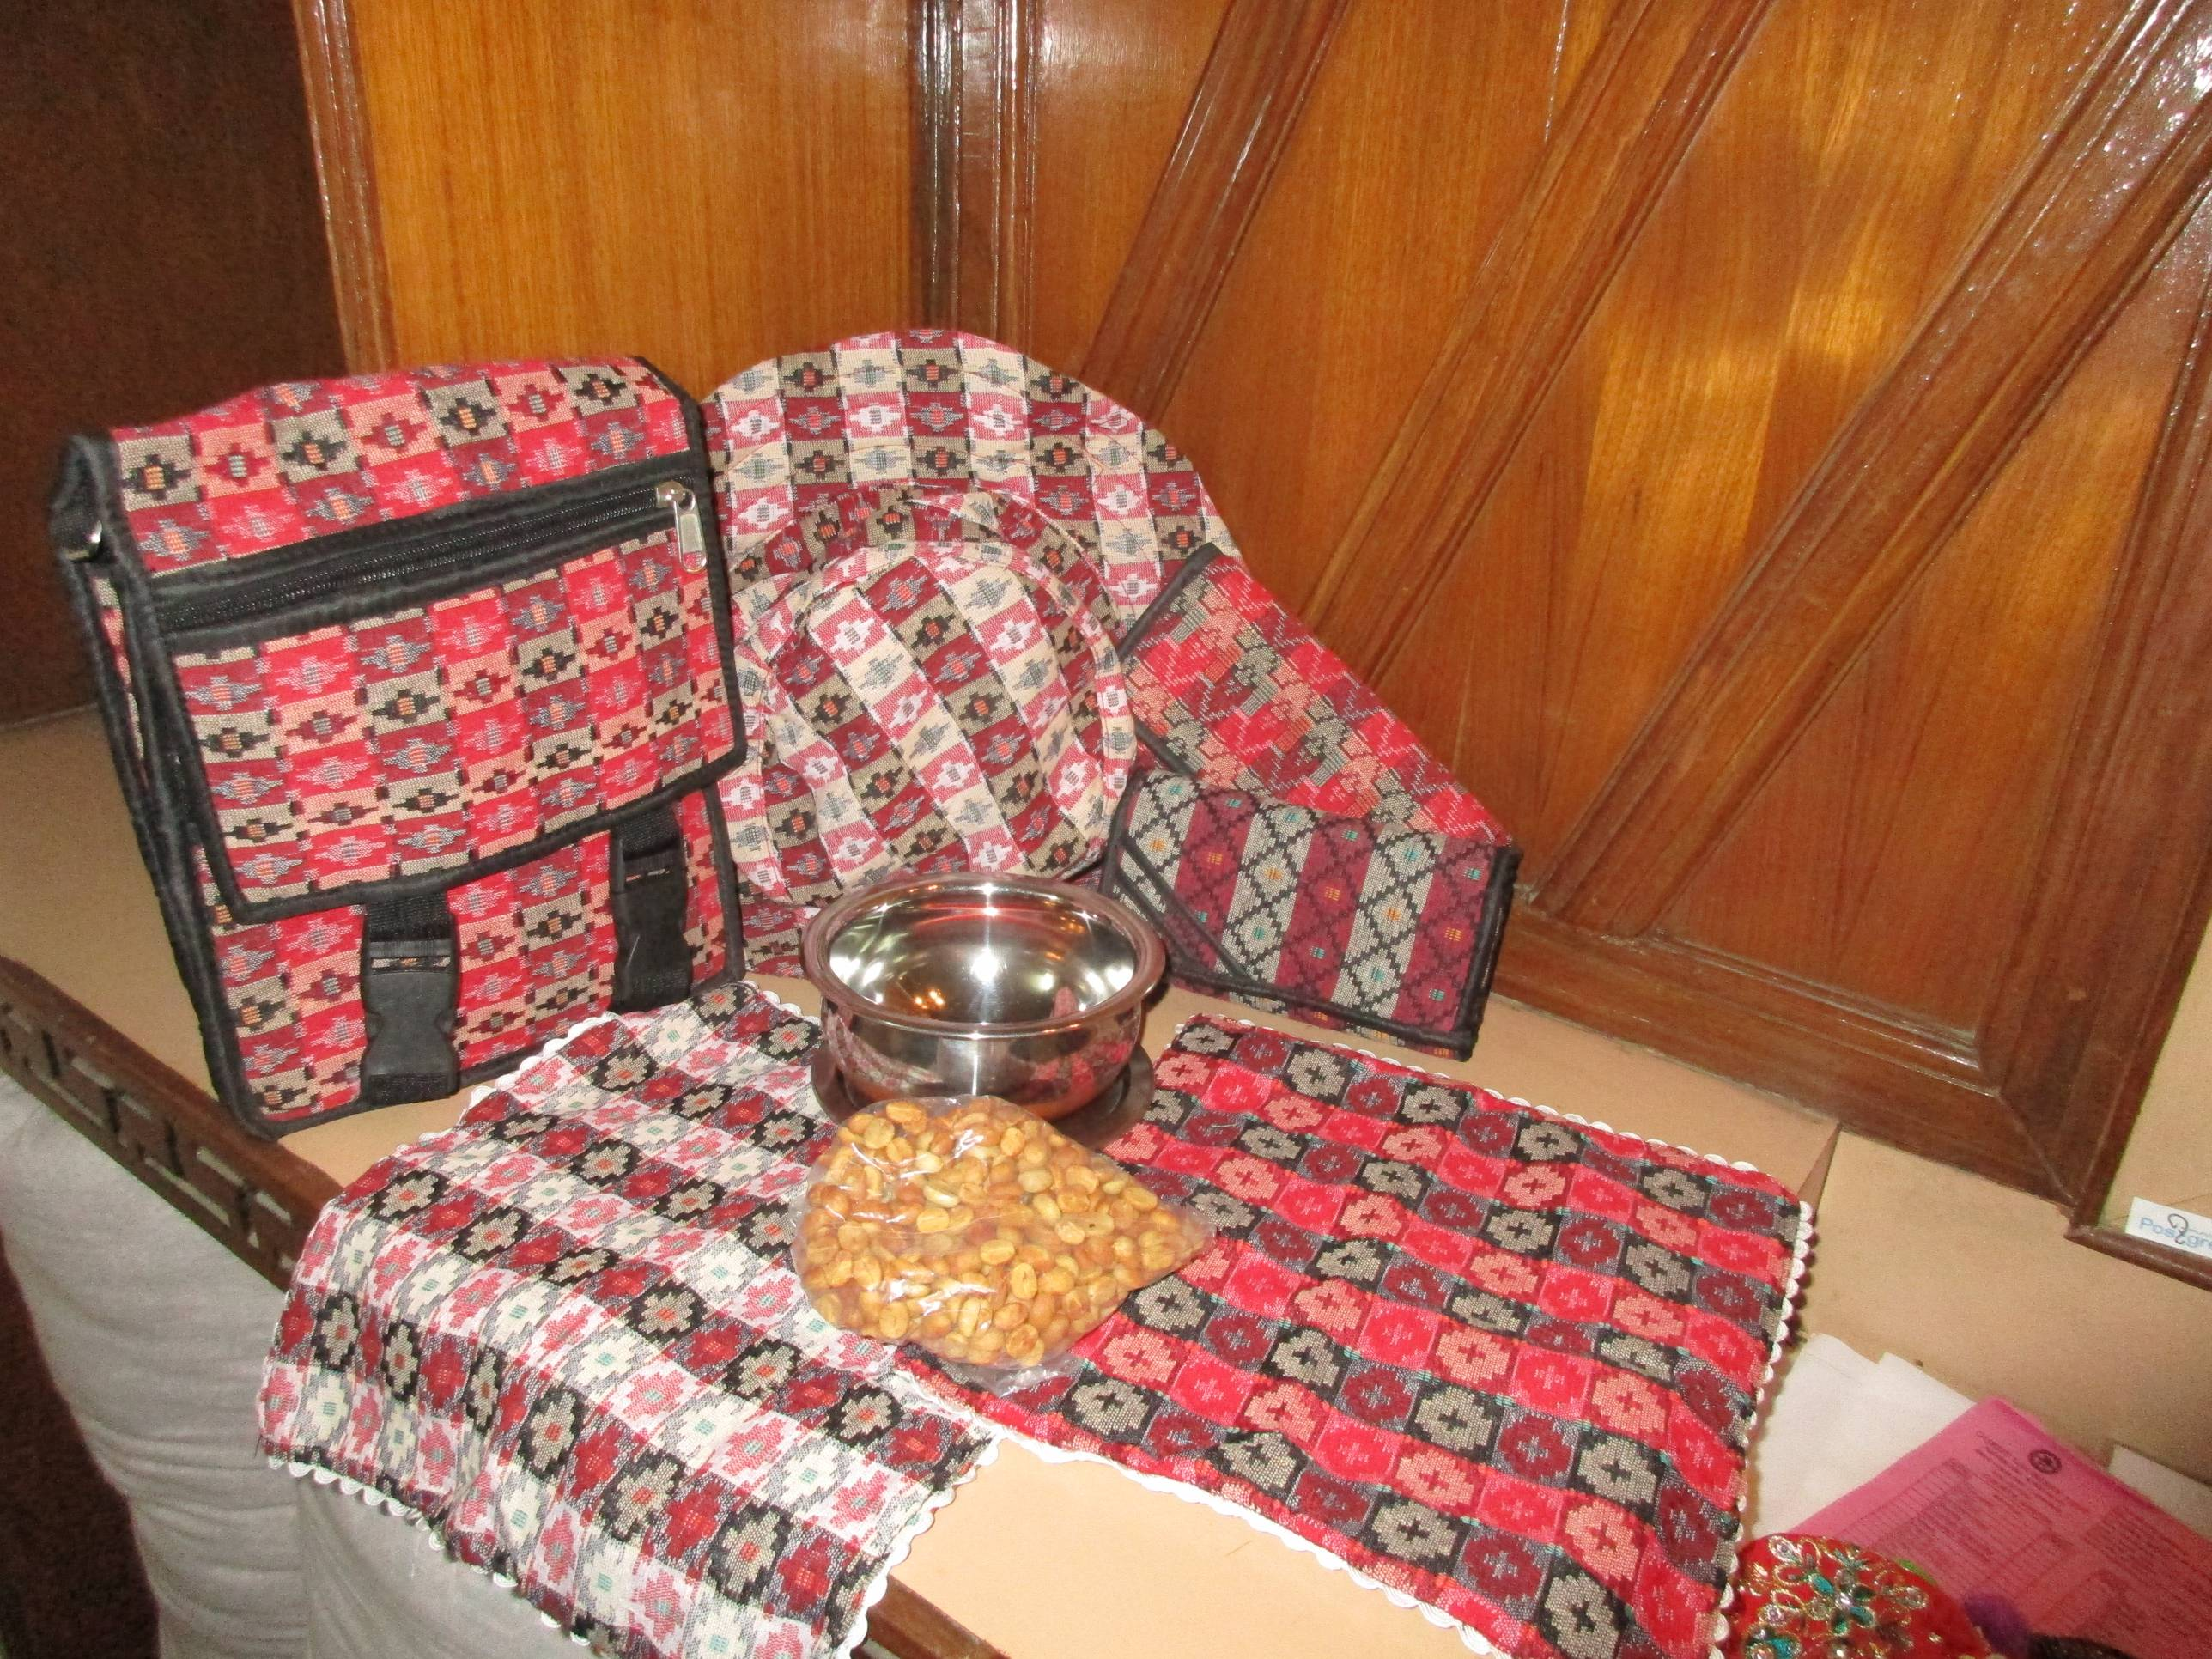 Dhaka products, Palpa is famous for production of Dhaka, a nepali fabric interwoven in colorful design